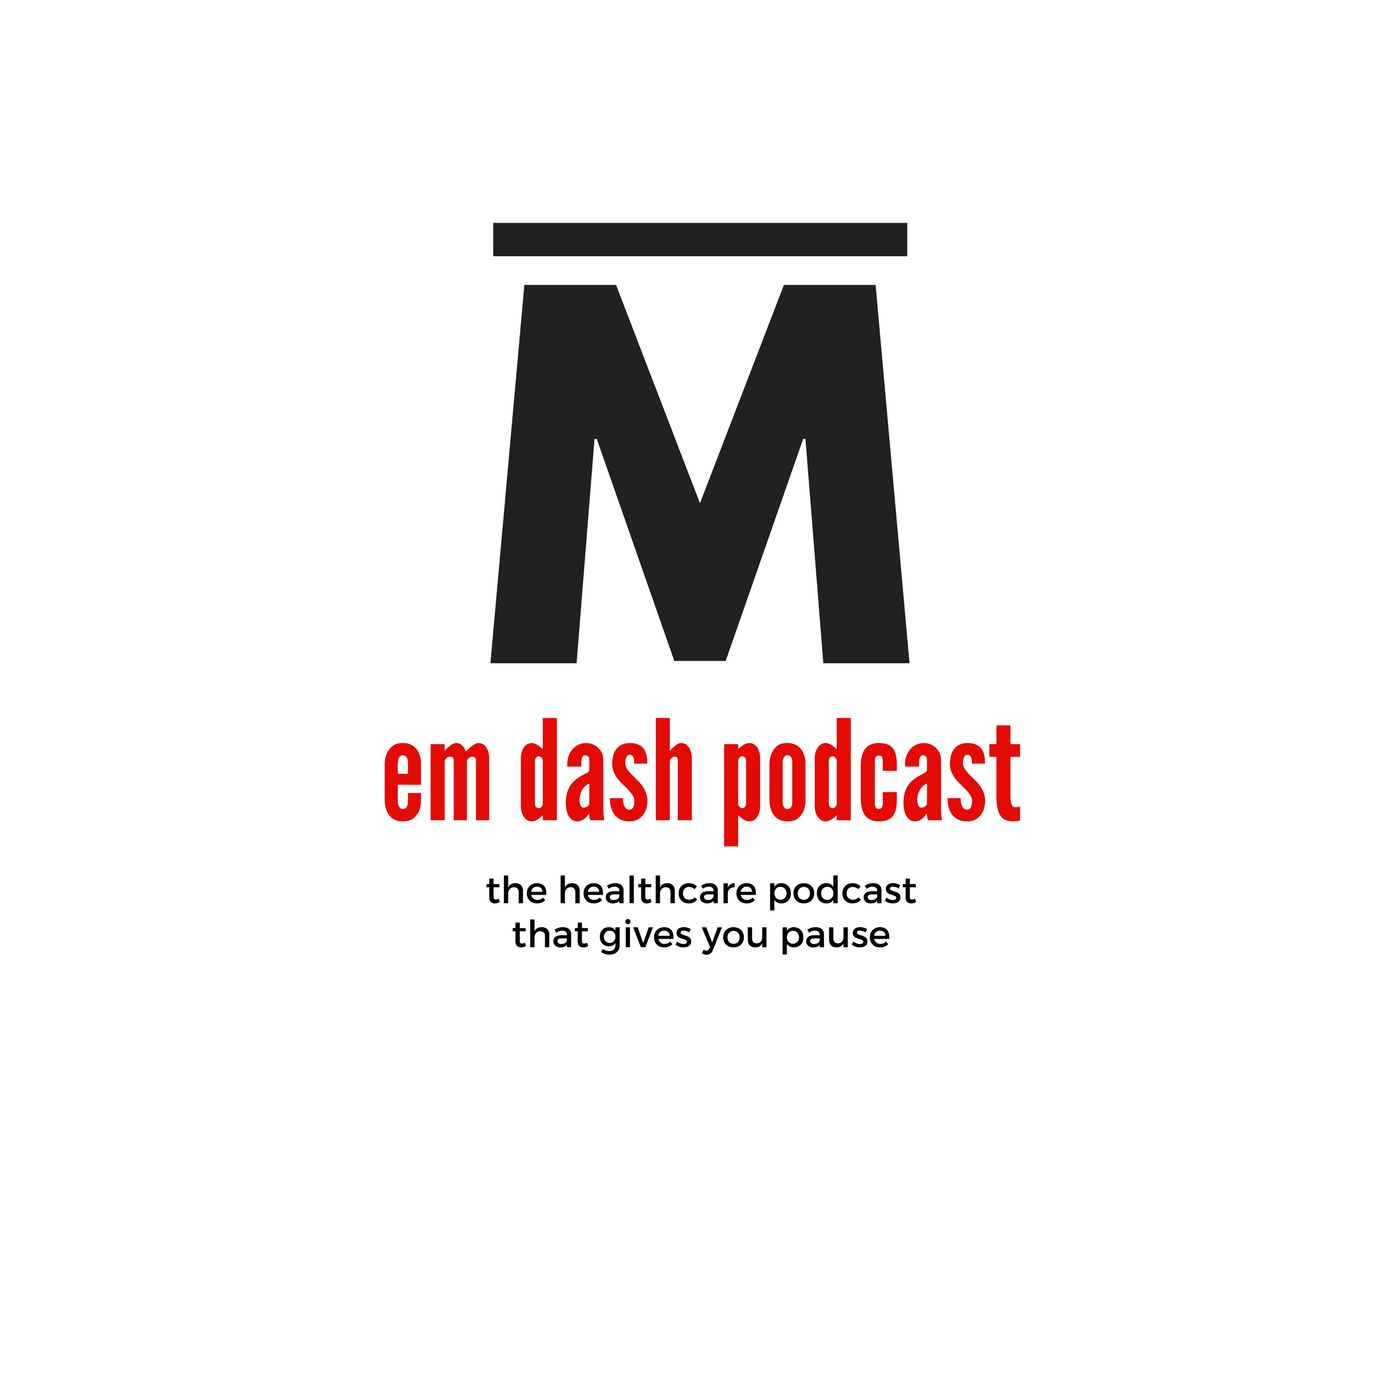 em dash podcast on Apple Podcasts